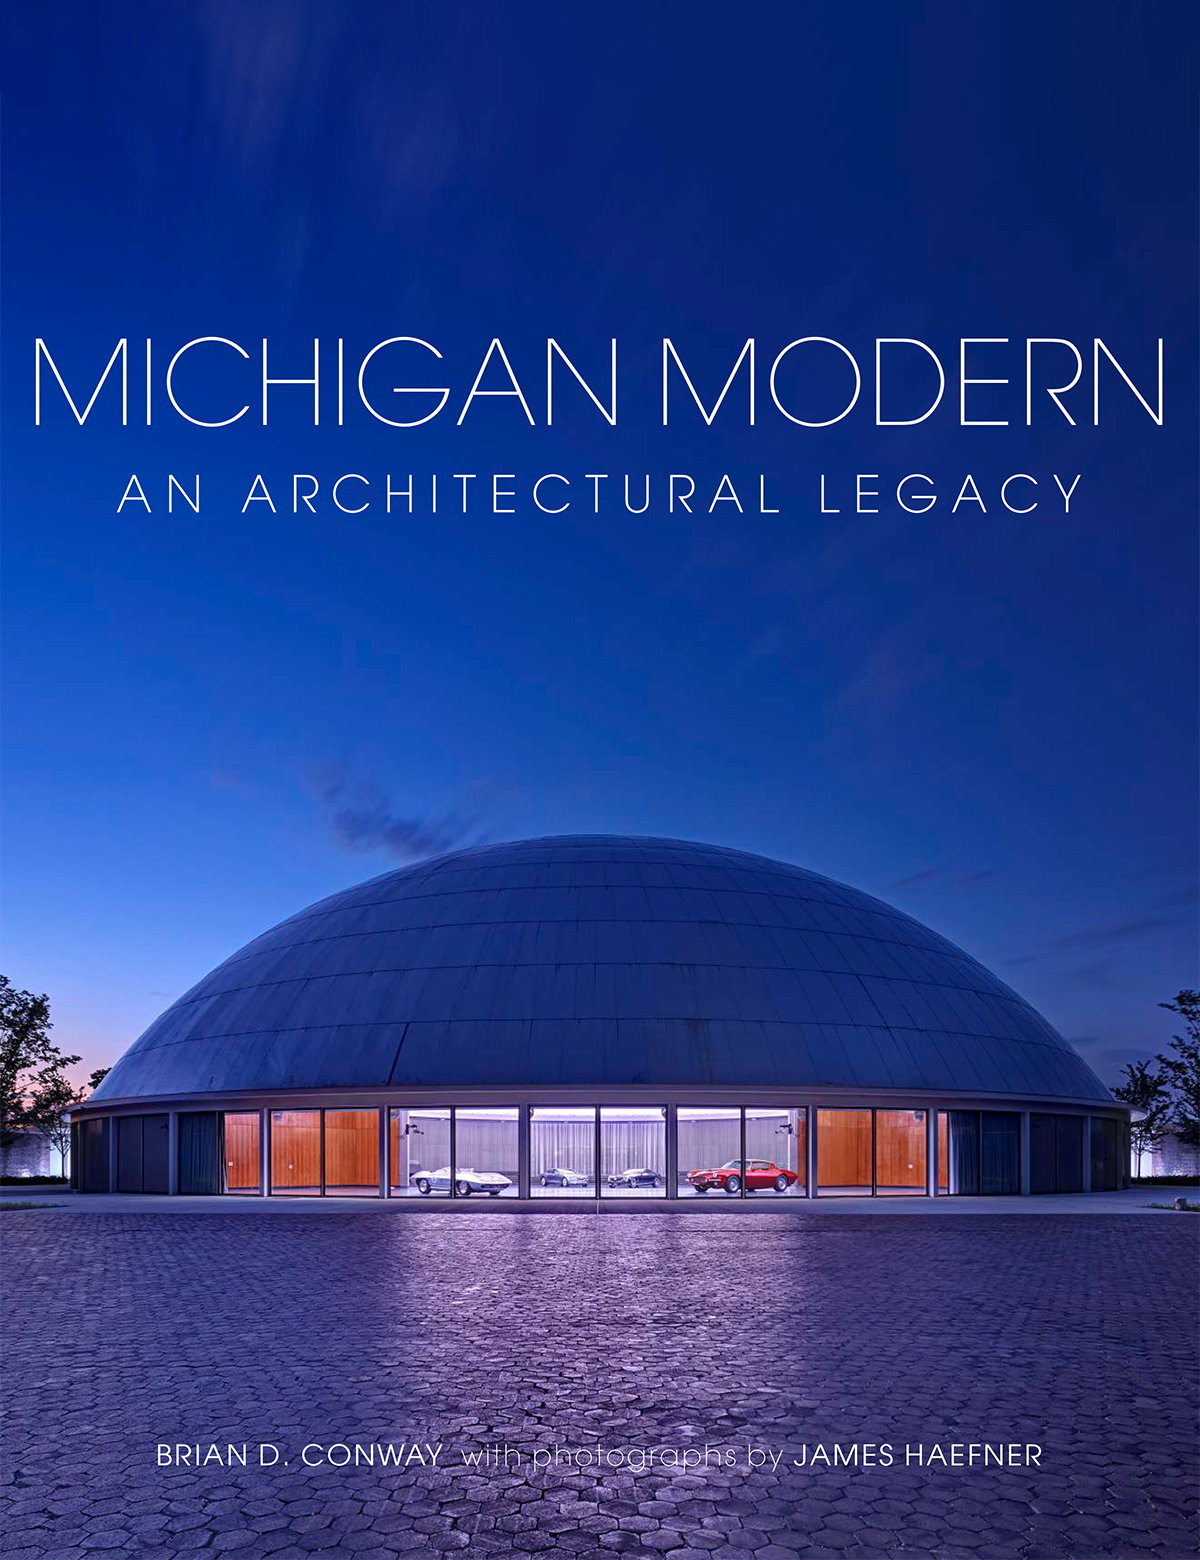 Michigan Modern - An Architectural Legacy